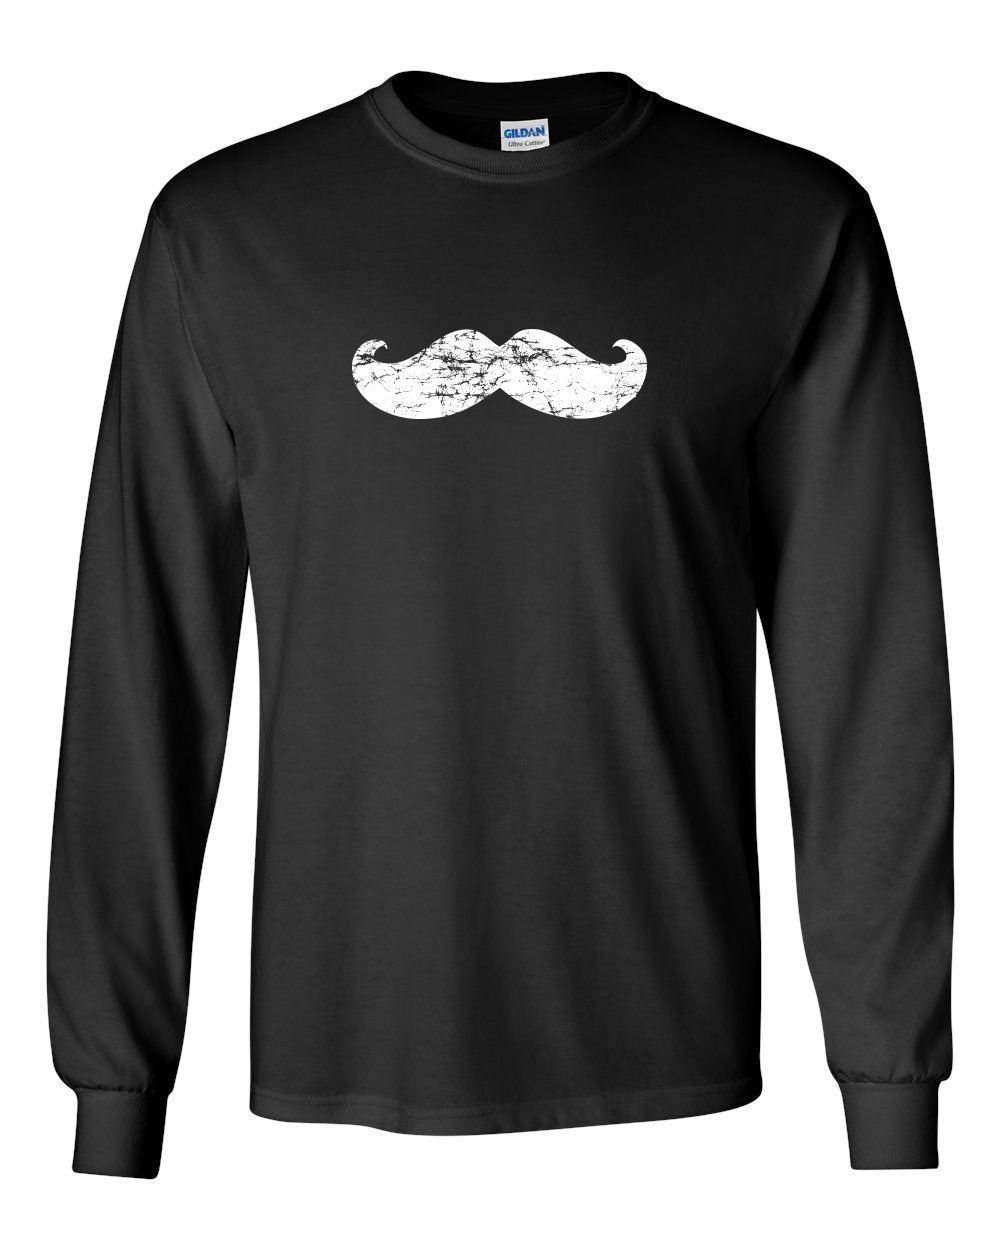 Primary image for 067 Mustache Party Long Sleeve Shirt beard facial hair pride college vintage new